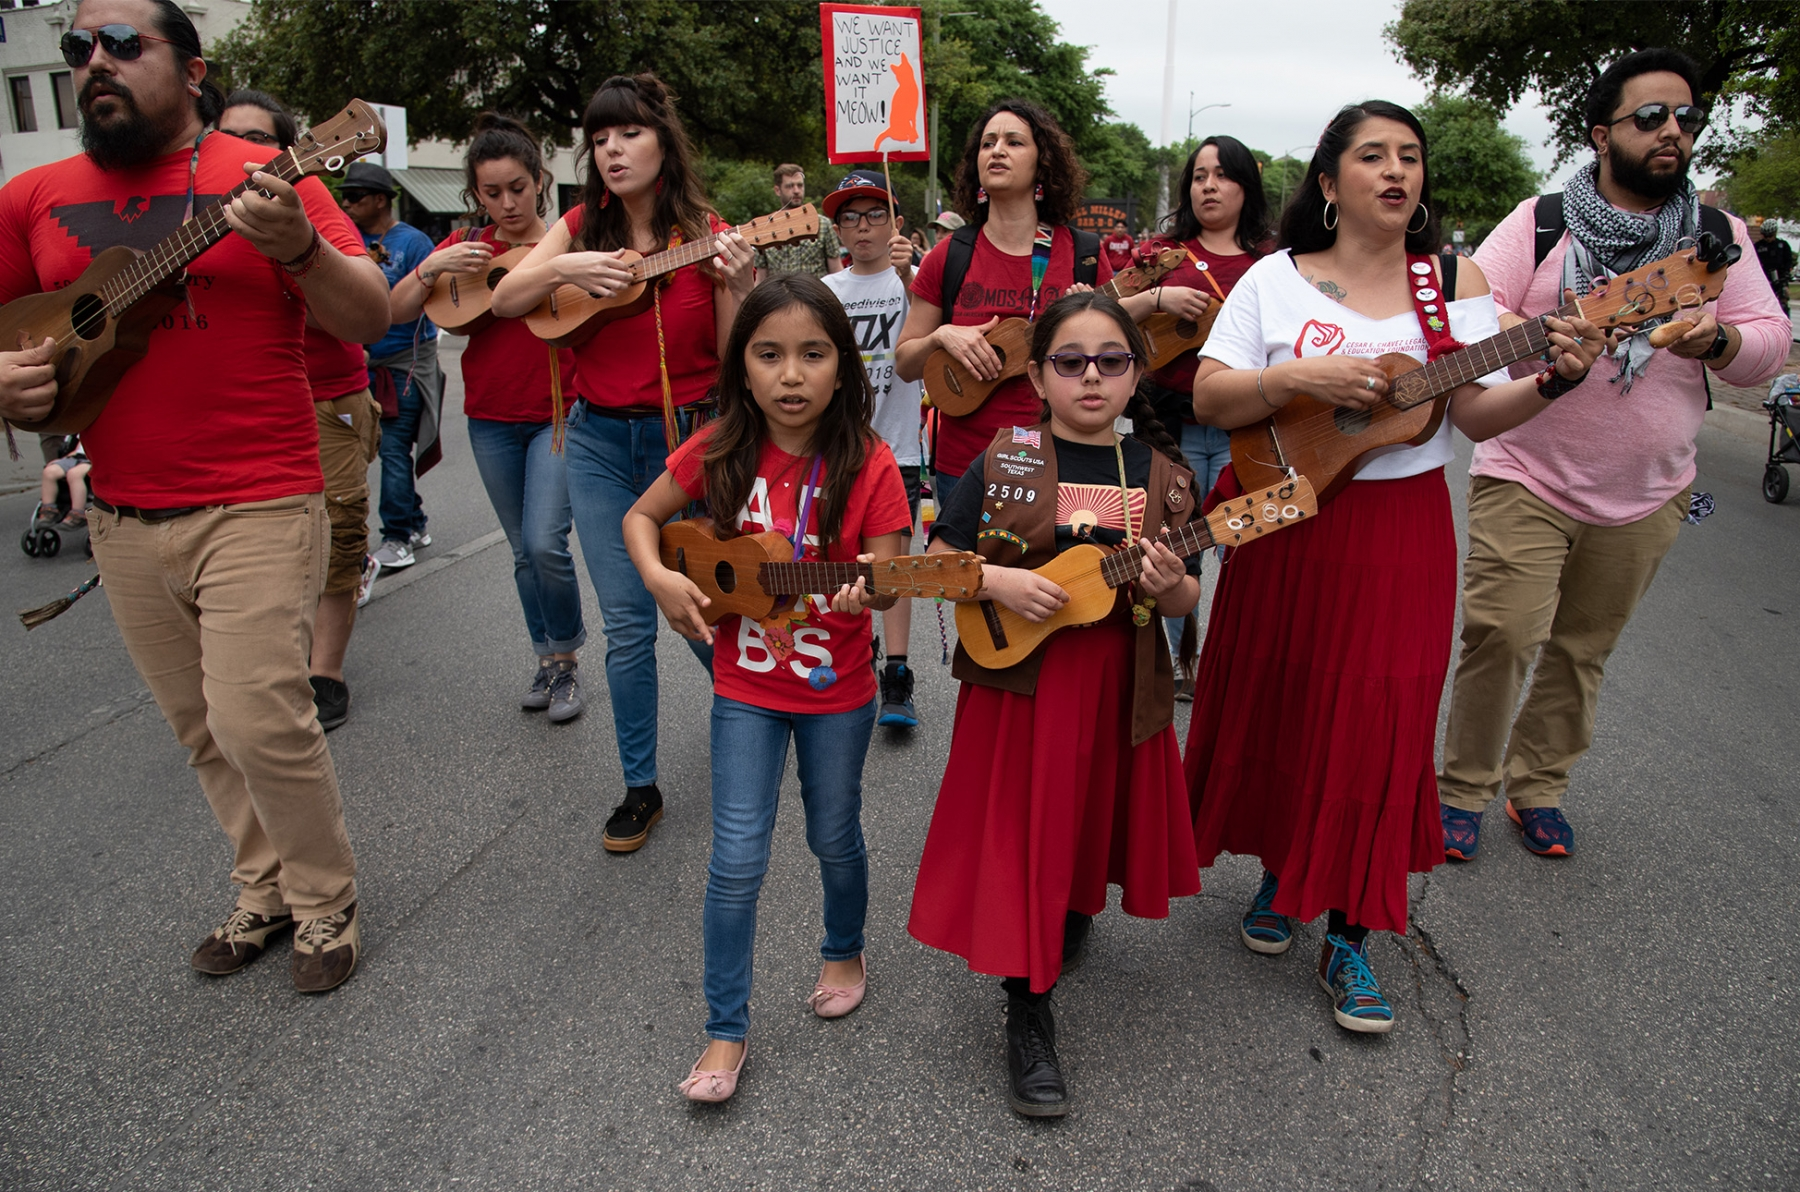 Members of Tallercito de Son play their instruments during San Antonio's 23rd annual César E. Chávez March for Justice March 30 on South Santa Rosa Avenue. Photo by V. Finster | Heron